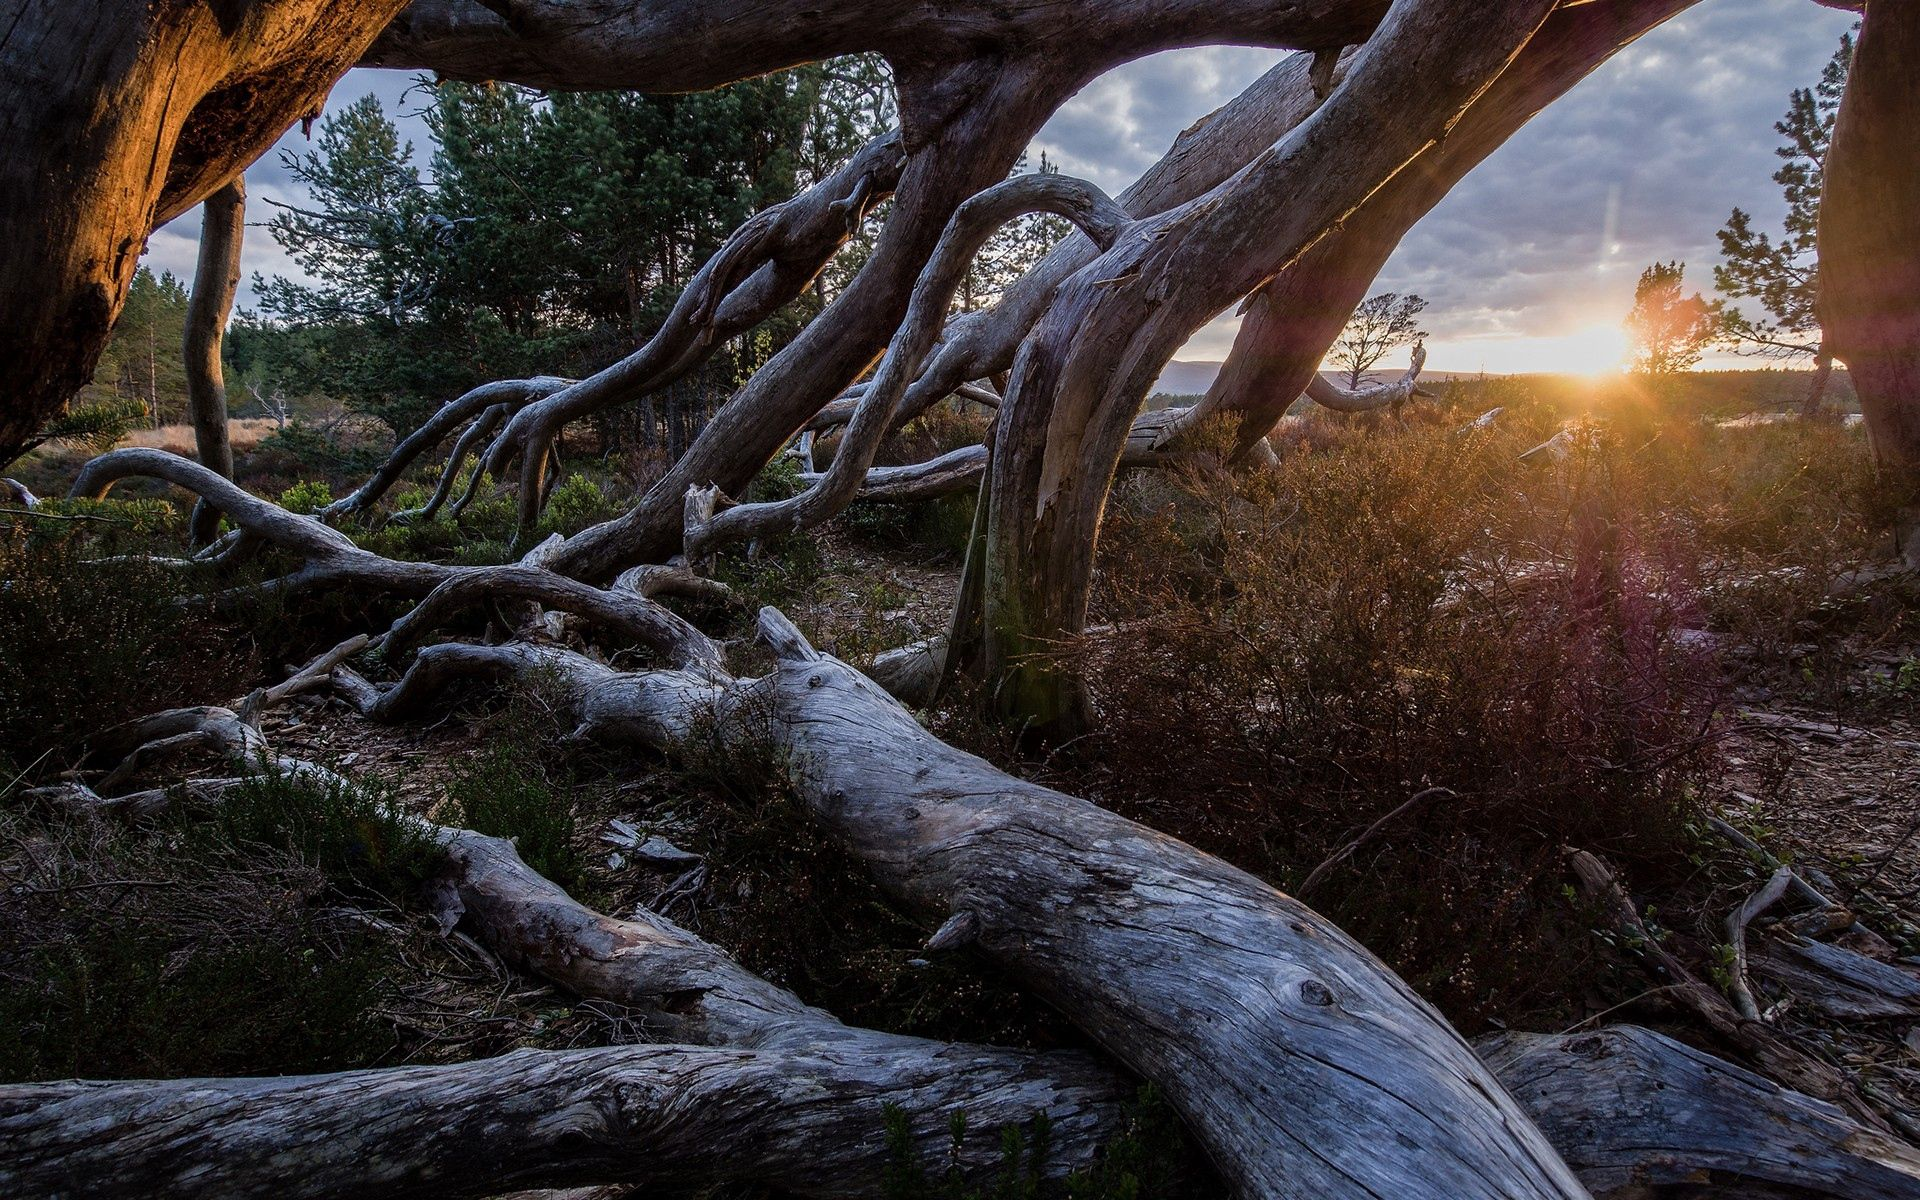 151961 download wallpaper Light, Nature, Trees, Grass, Sky, Shine screensavers and pictures for free